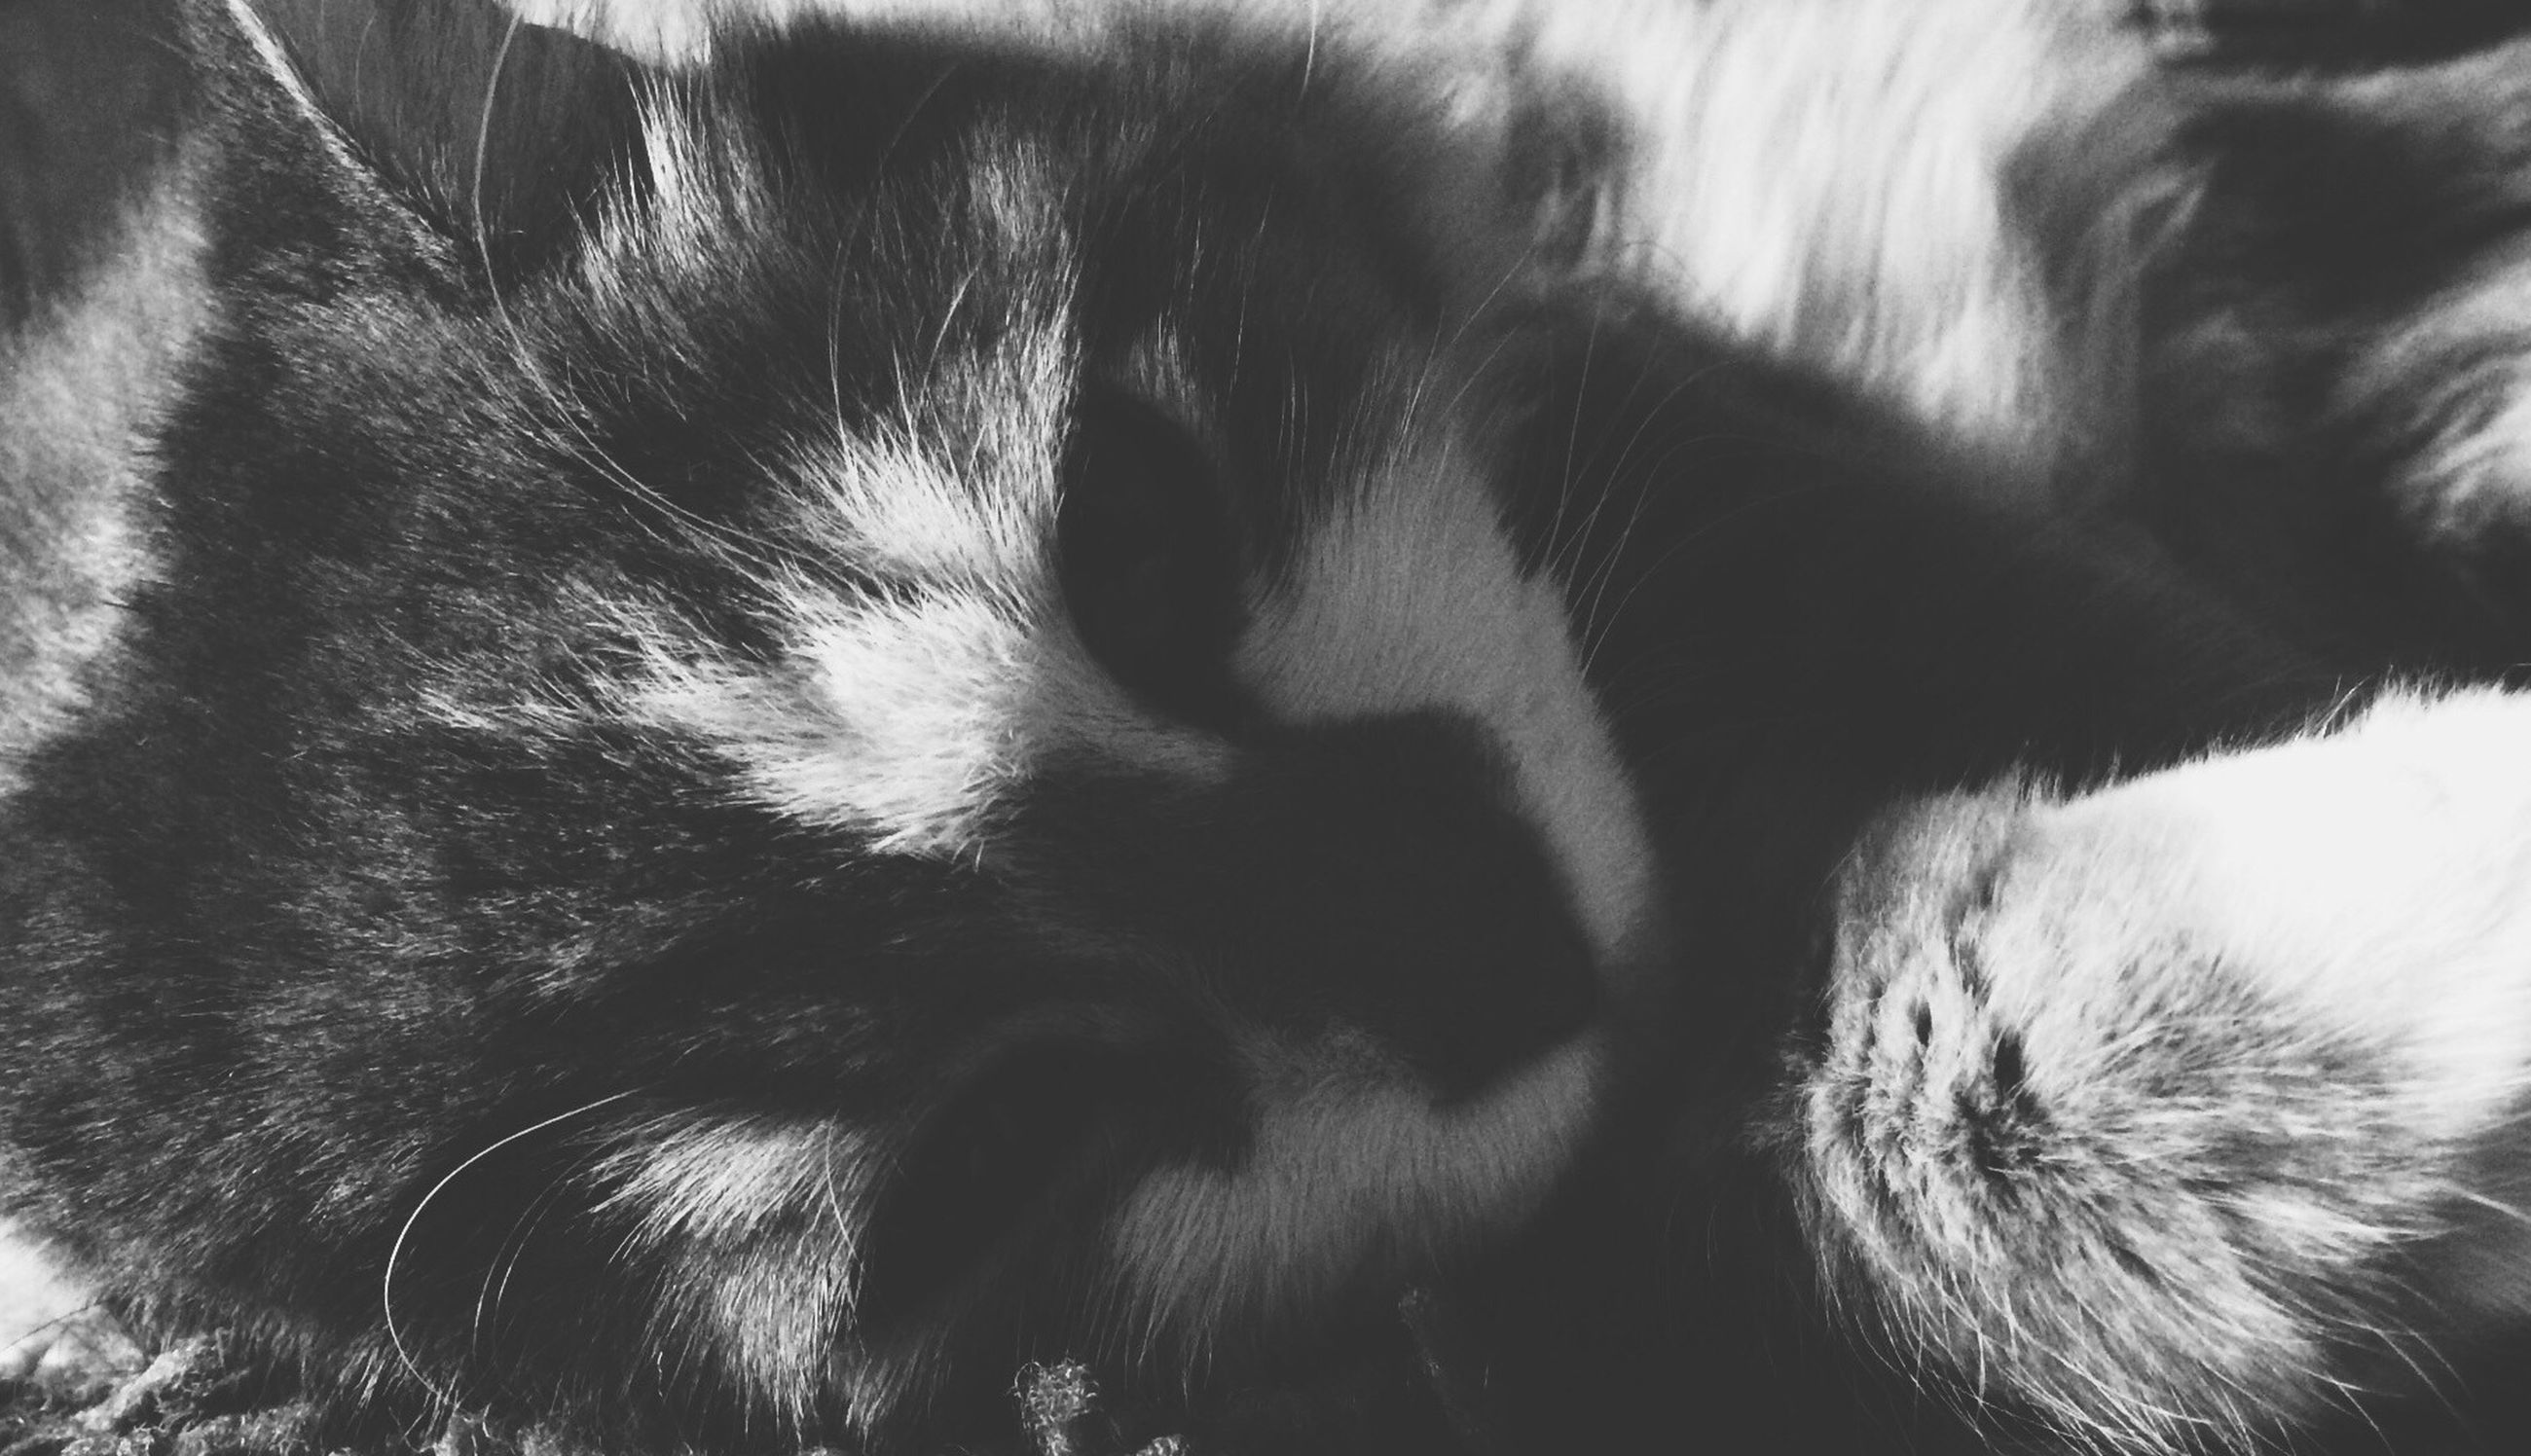 pets, domestic animals, mammal, animal themes, one animal, domestic cat, cat, feline, whisker, close-up, indoors, animal head, animal body part, no people, relaxation, part of, black color, zoology, animal eye, animal